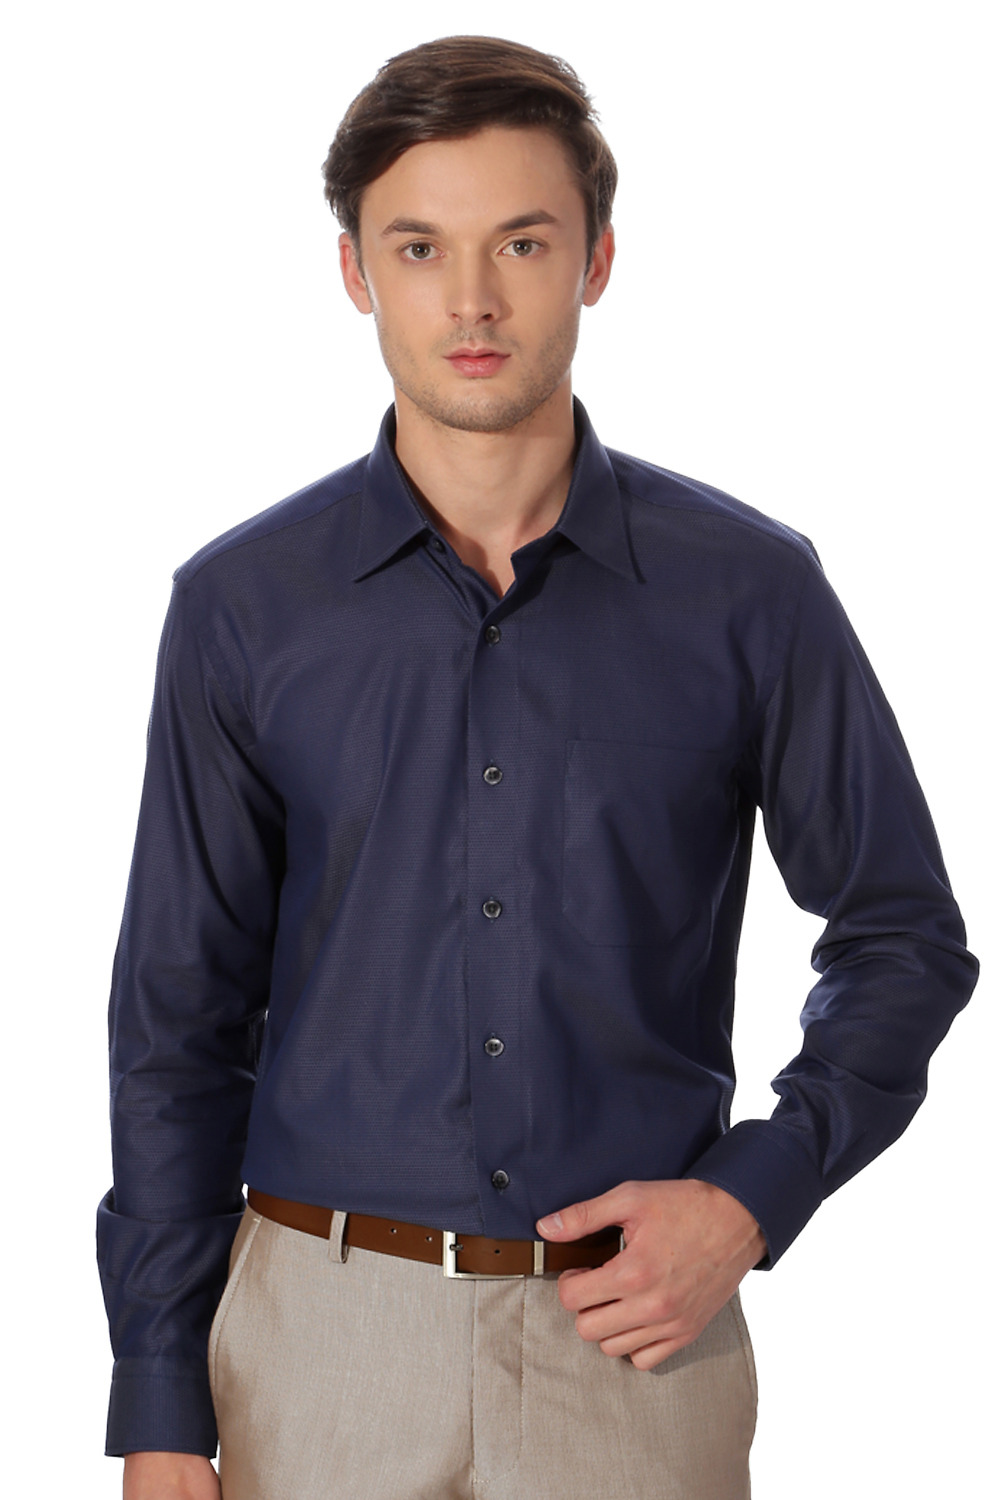 Blue Formal Patterned Shirt in Comfort FitLouis Philippe Formal Shirts